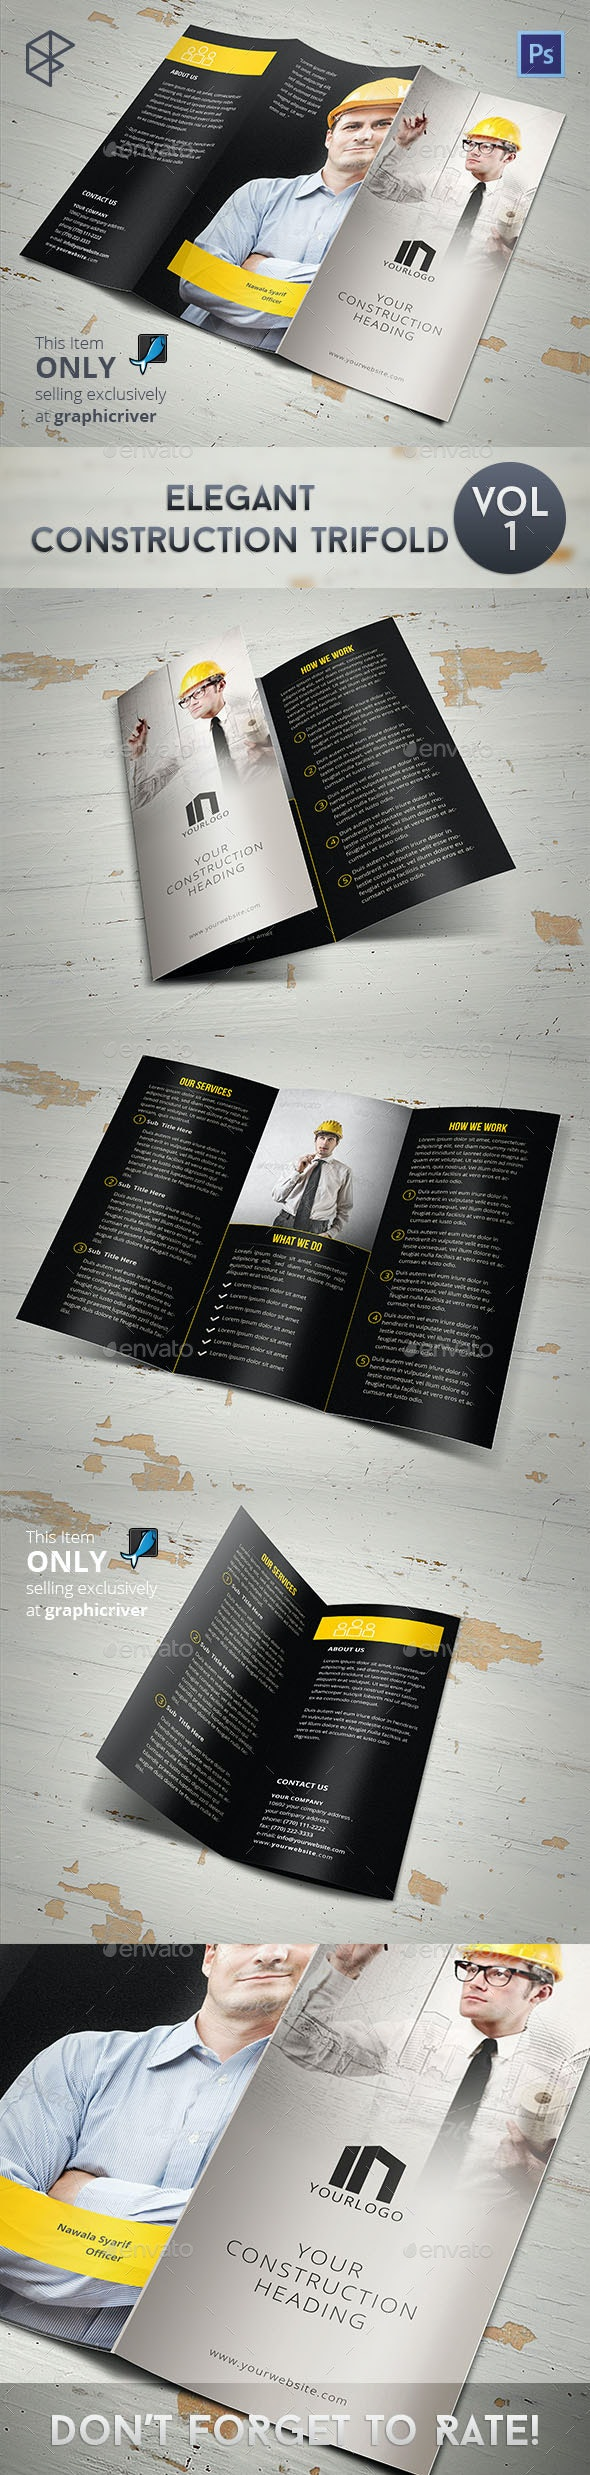 Elegant Construction Trifold - Corporate Brochures